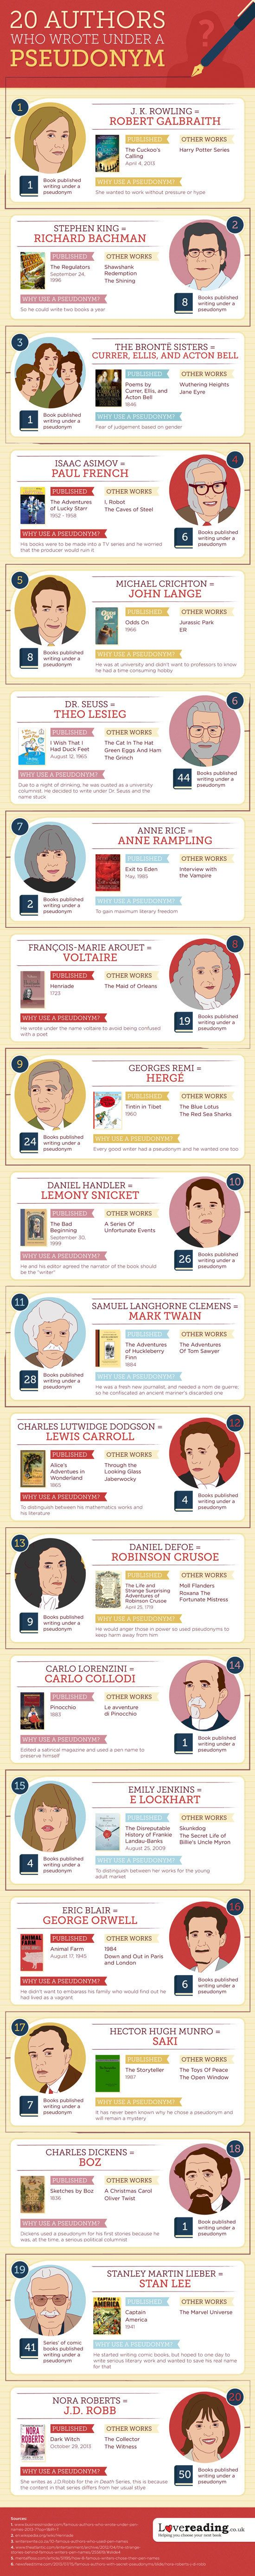 Would you use a pen name? These authors did. | 15 Insanely Useful Diagrams For Book Lovers